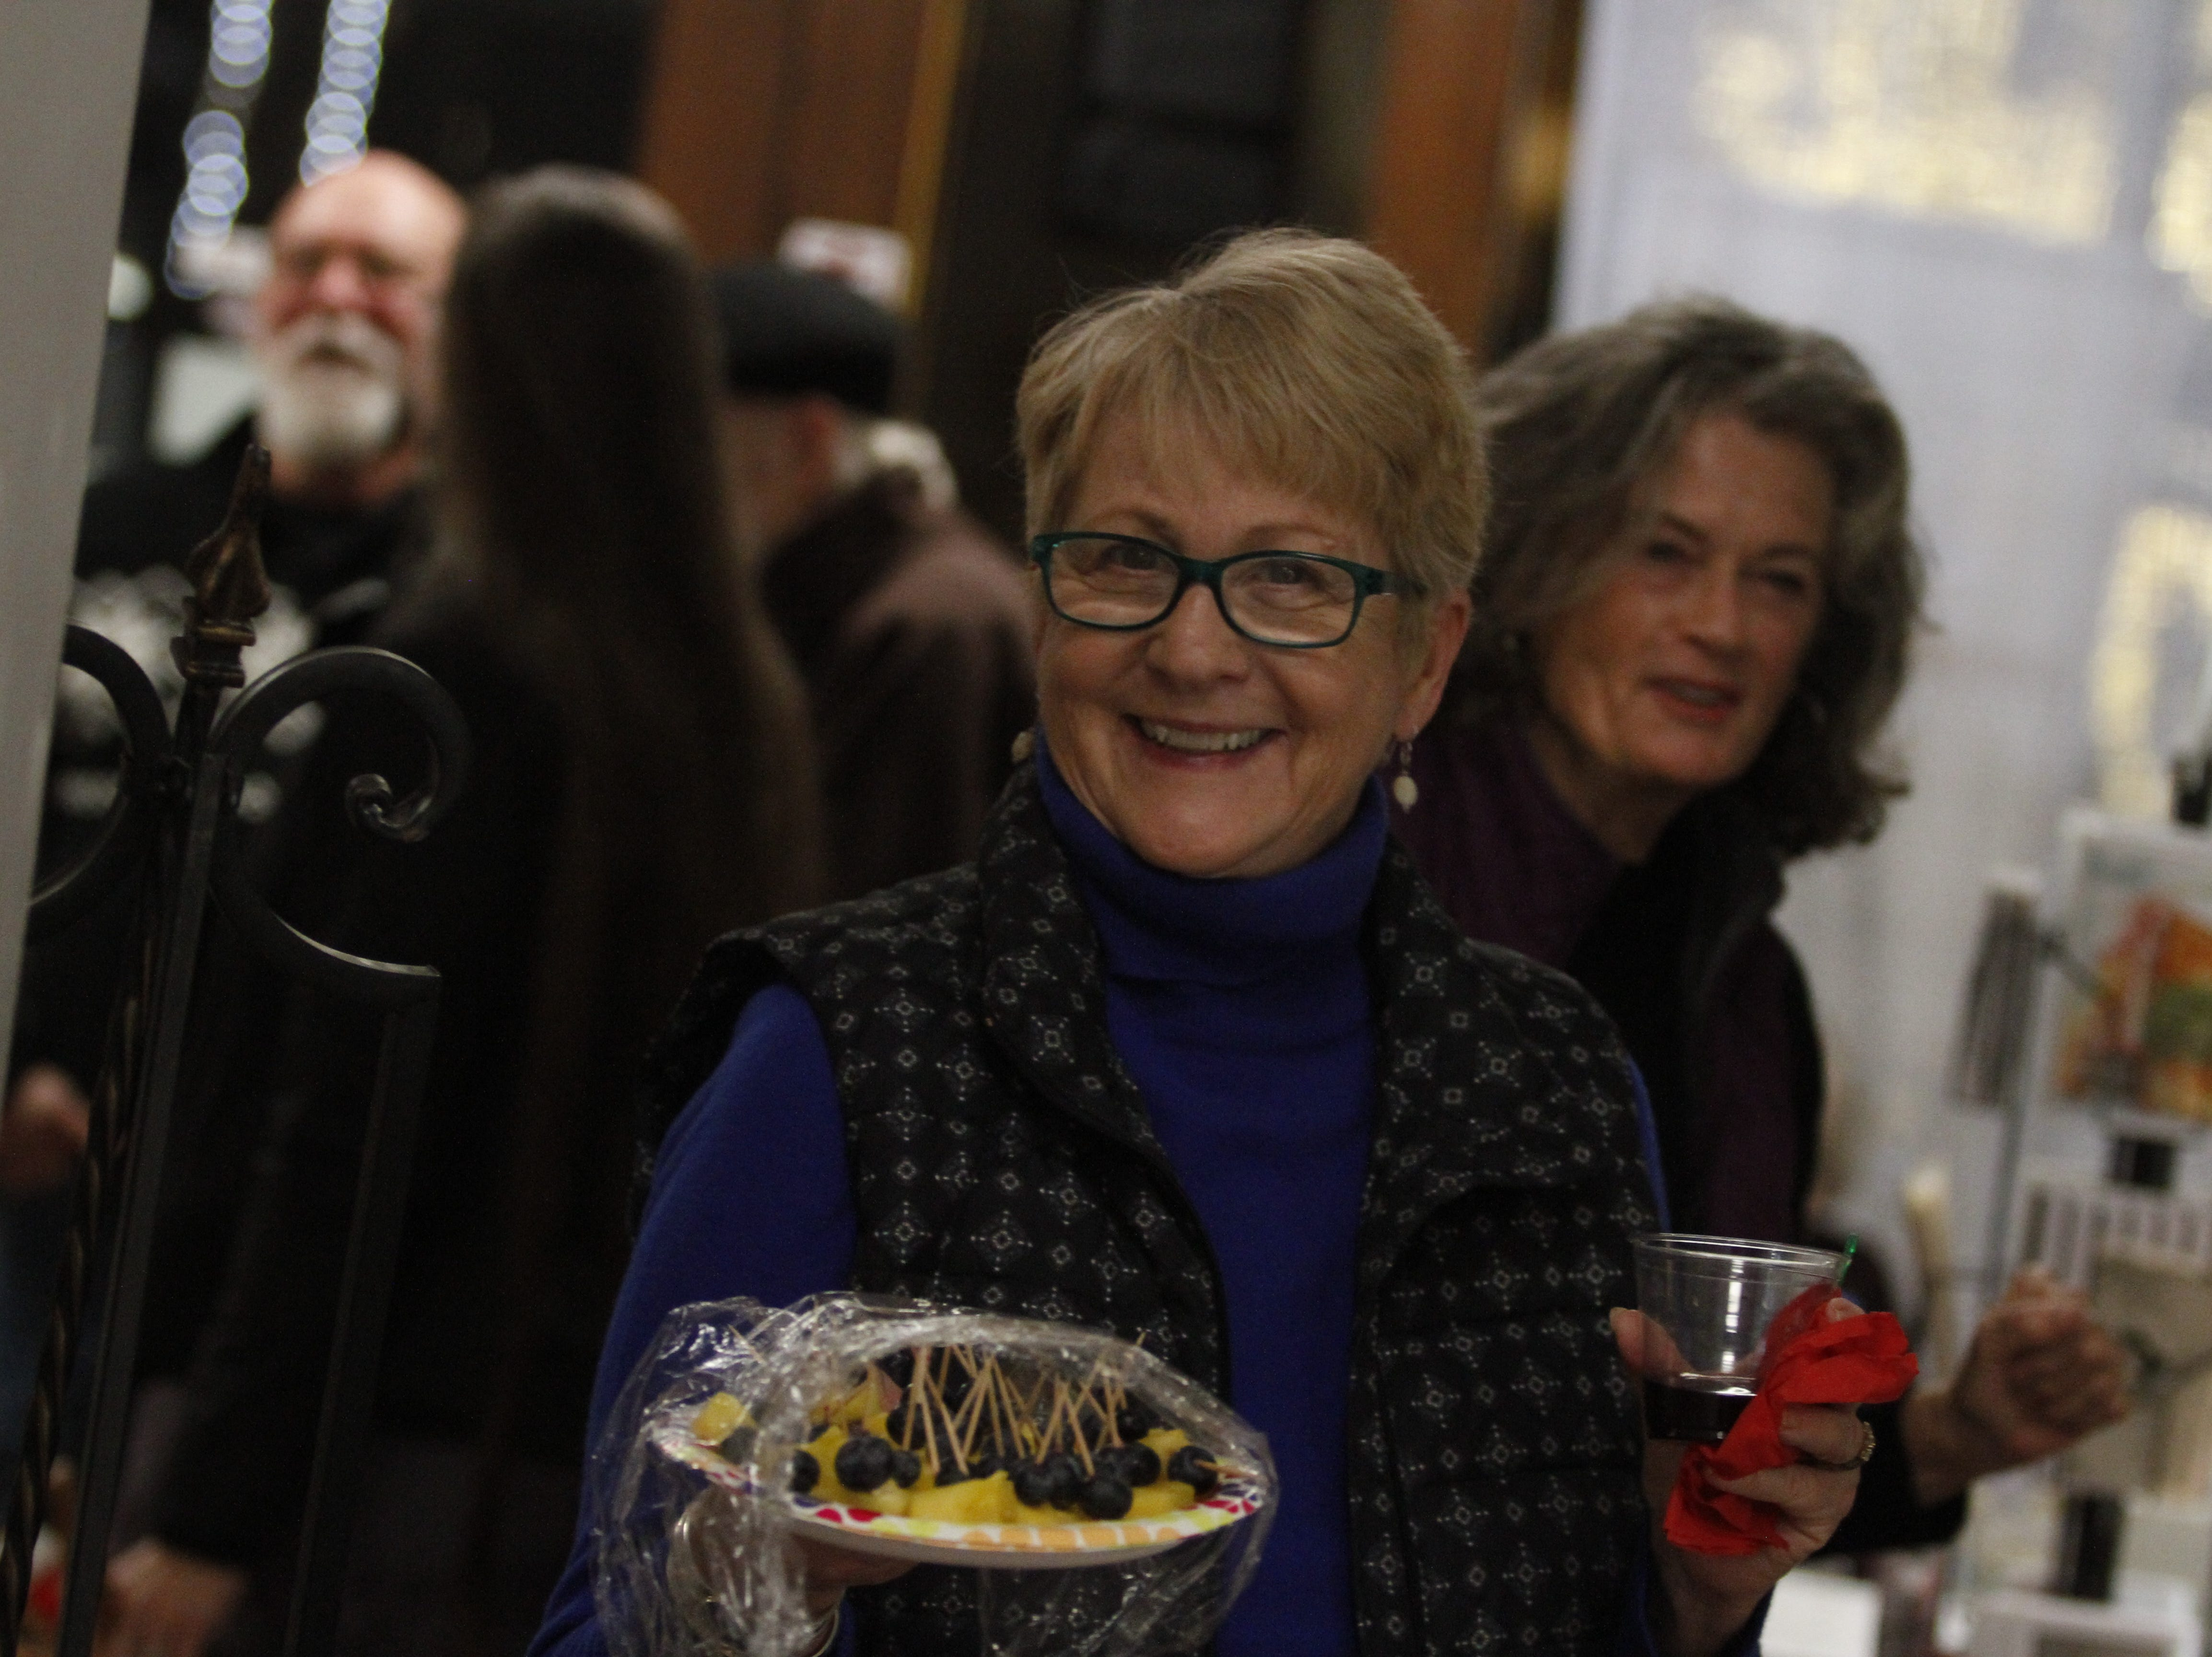 Jane Diehr smiles during the New Year's Eve party at the Downtown Artists Co-op, Dec. 31, 2018, in Clarksville, Tenn.